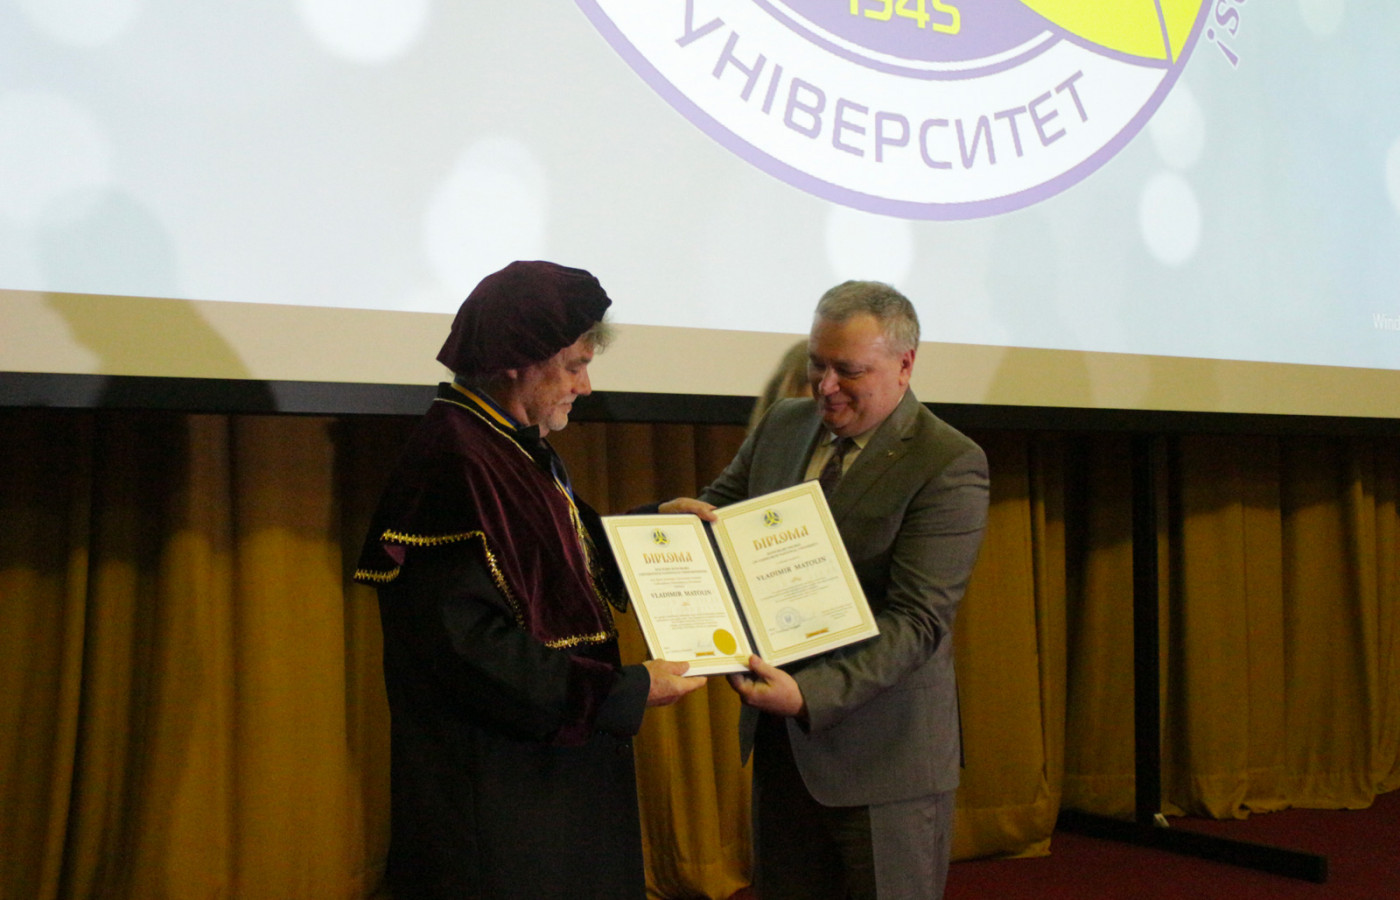 Honorary doctorate for Prof. Matolín